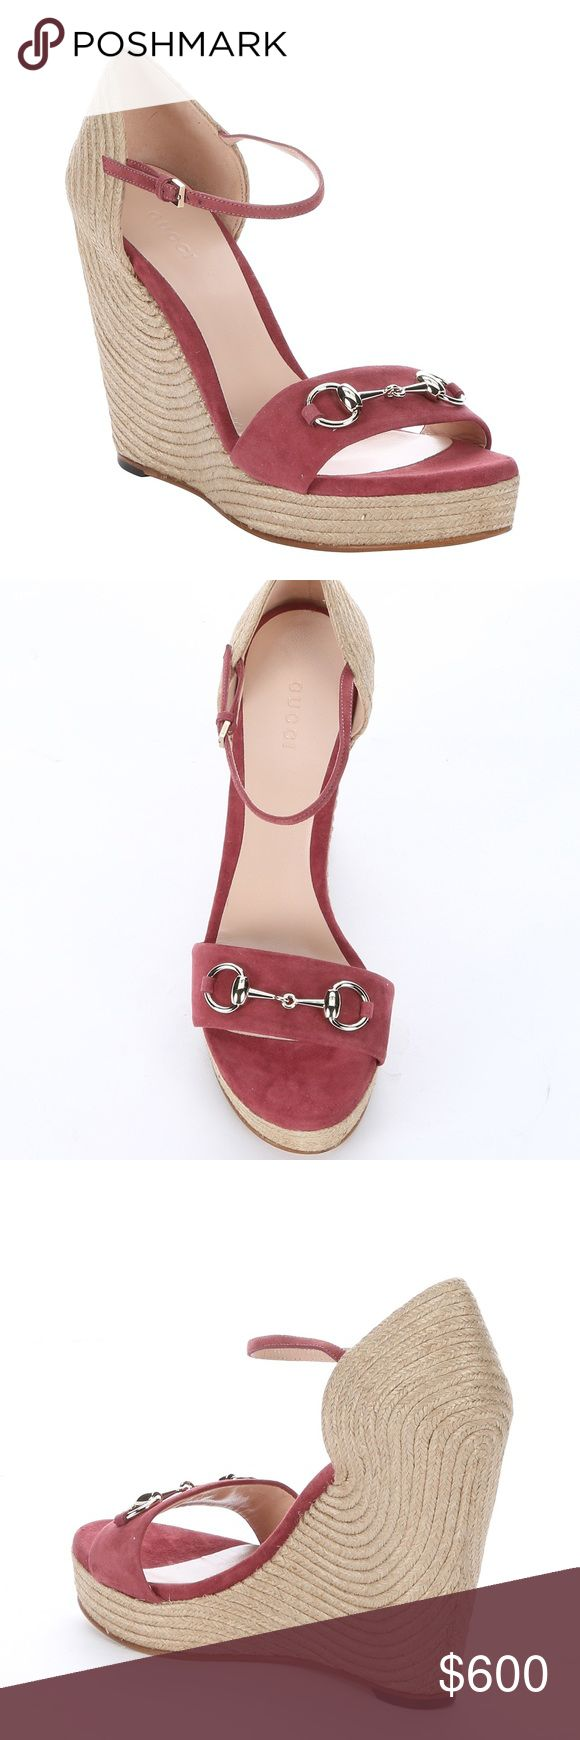 Gucci Suede and Jute Horsebit Detail Wedge Sandals New, never worn. Original box, dust bag included. Suede upper, leather insoles. Size US 7.5  More pictures coming. Original price on Gucci.com is $595 without taxes. Gucci Shoes Wedges